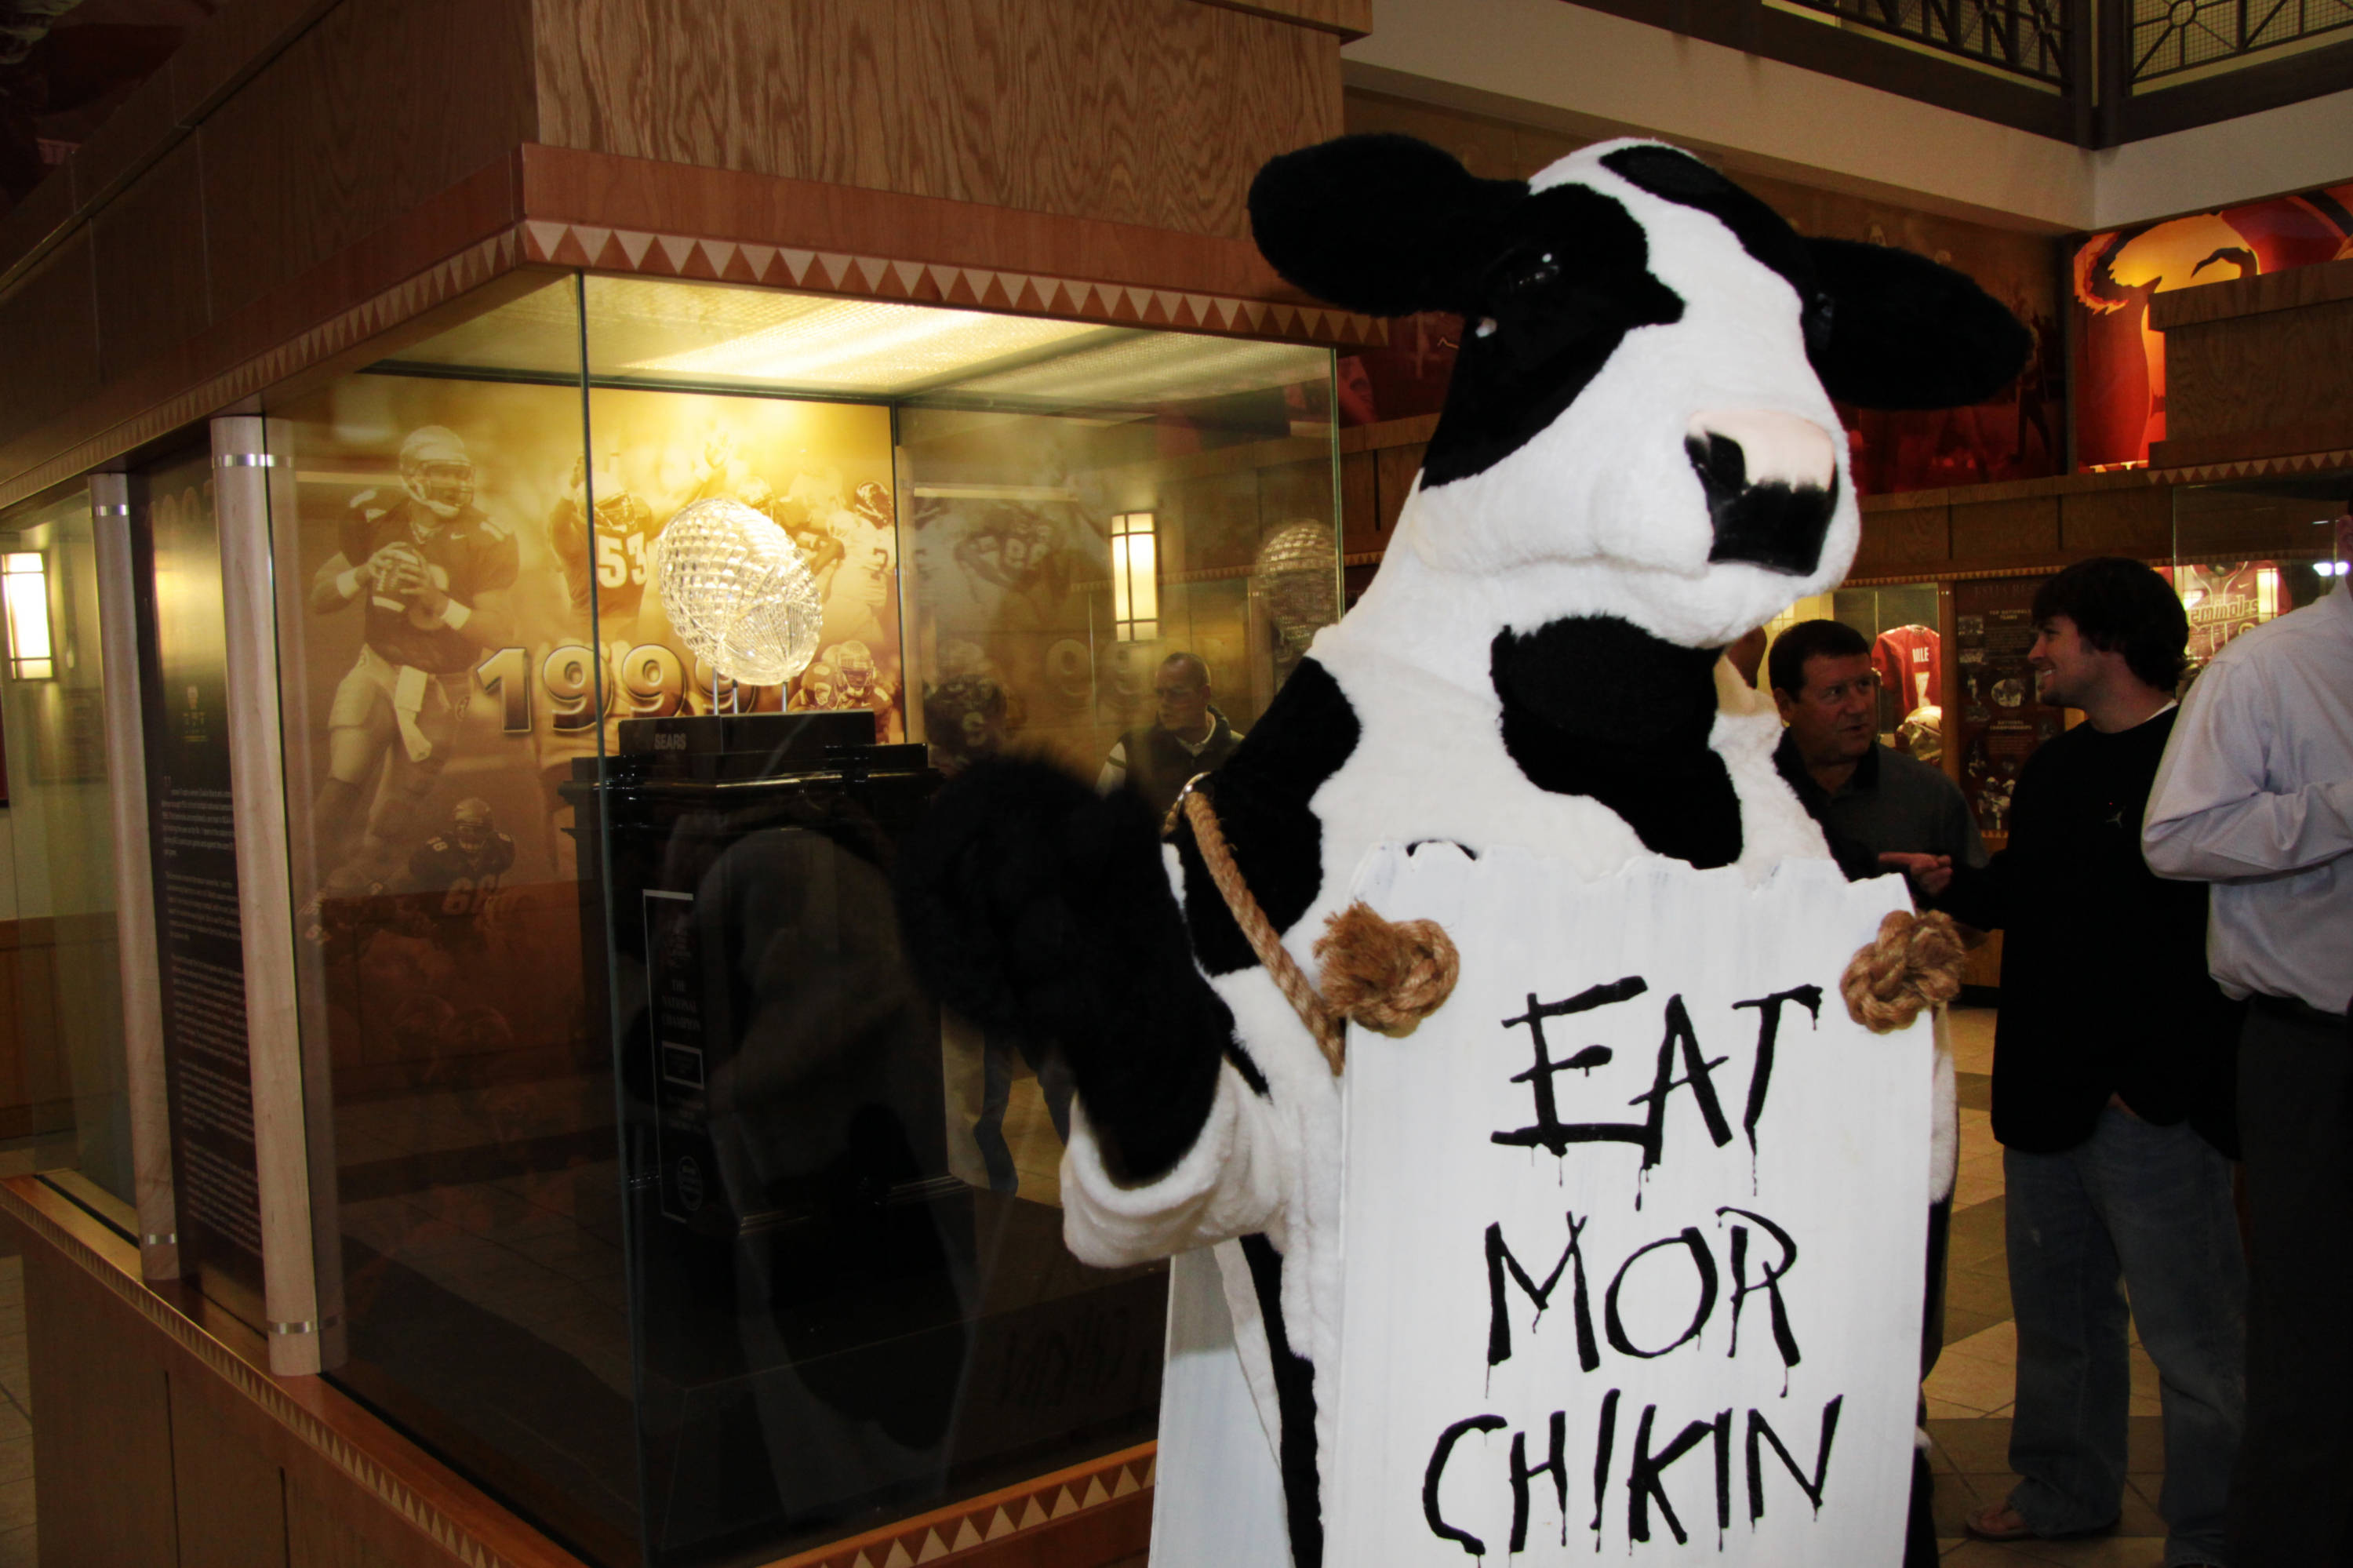 Even the Chick-fil-A cow is excited for the Seminoles to play in Atlanta, Ga.